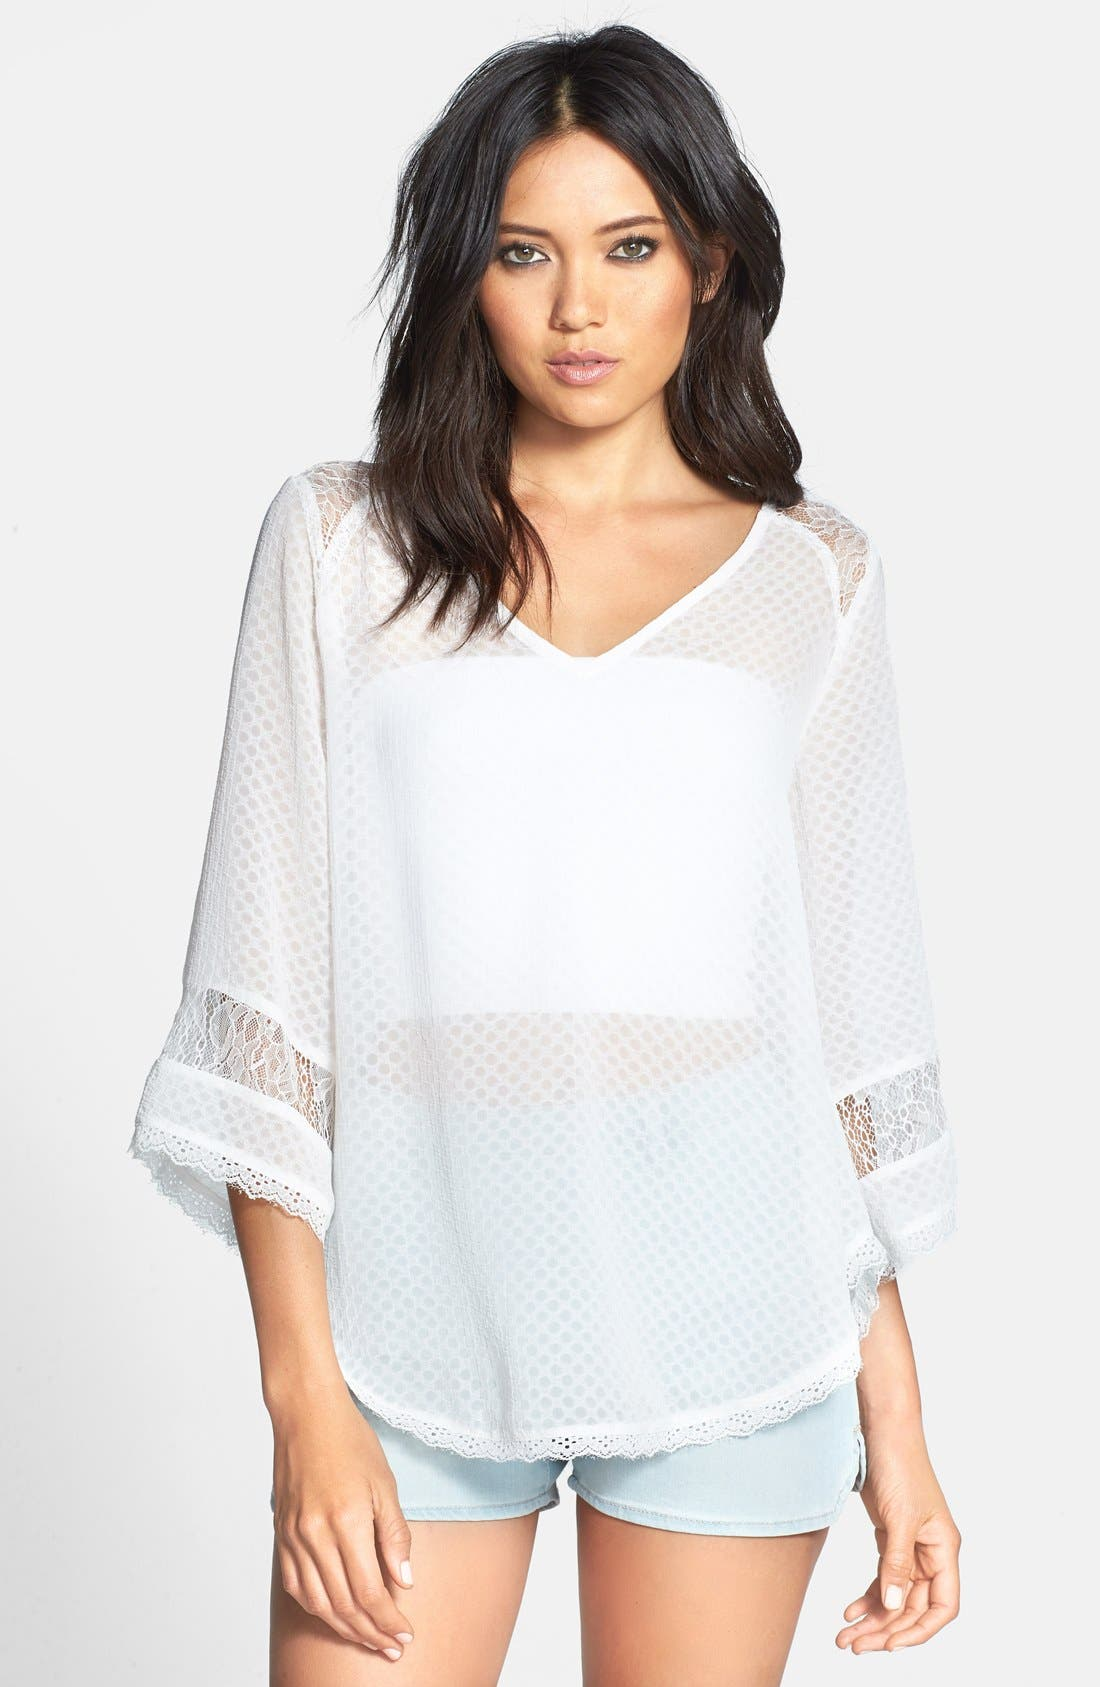 Main Image - ASTR Lace Inset Textured Top